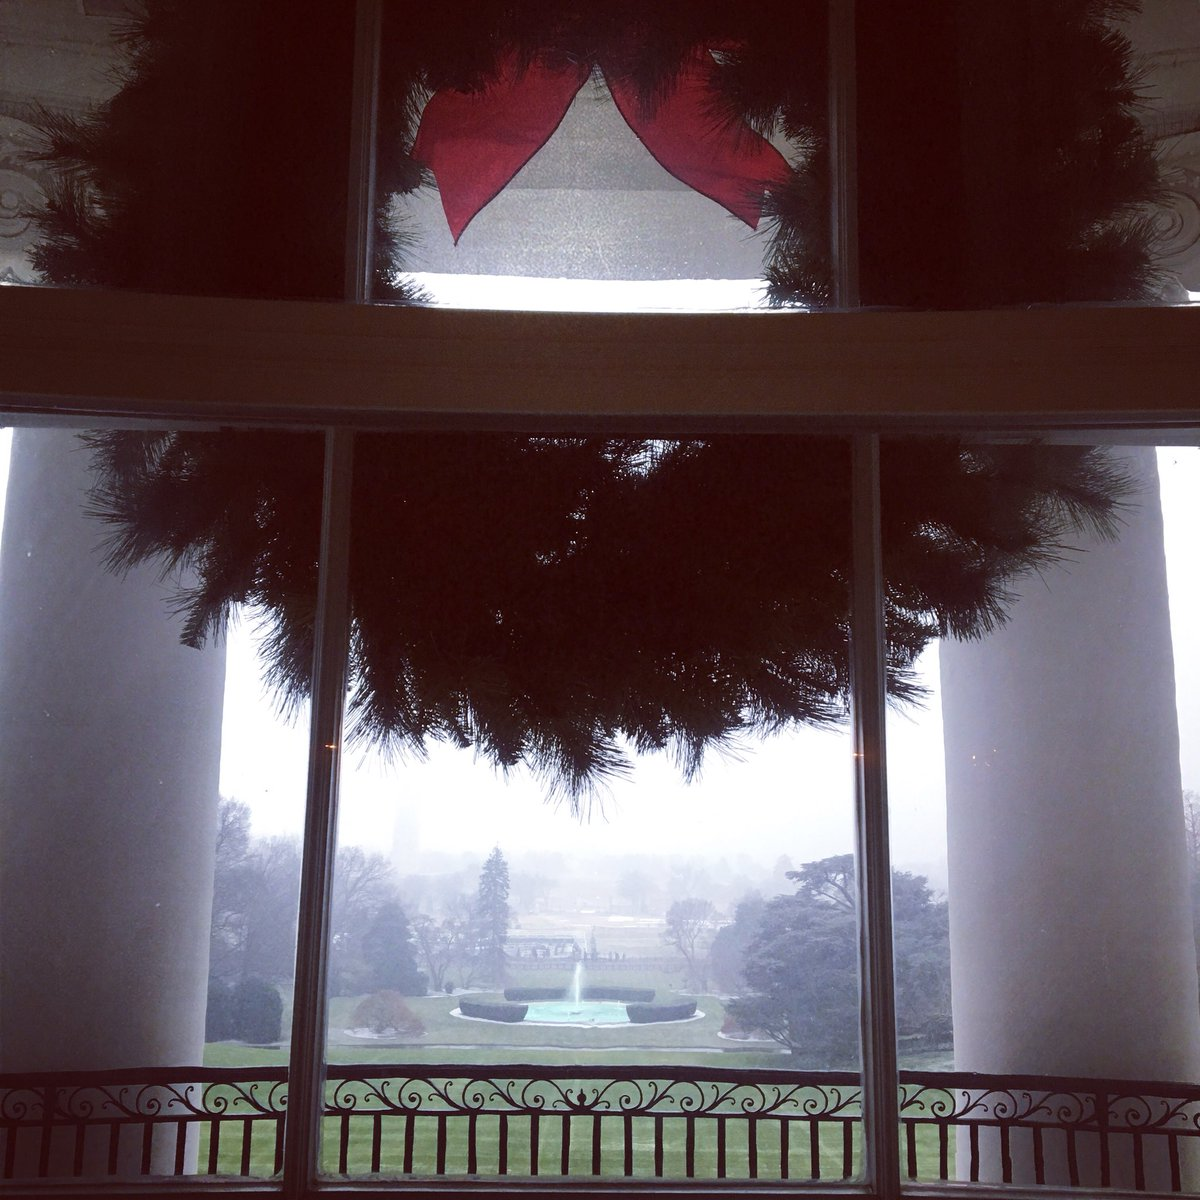 RT @FLOTUS: Beautiful morning @WhiteHouse #Christmas. First #snowday2017 https://t.co/m2YGh4e18M